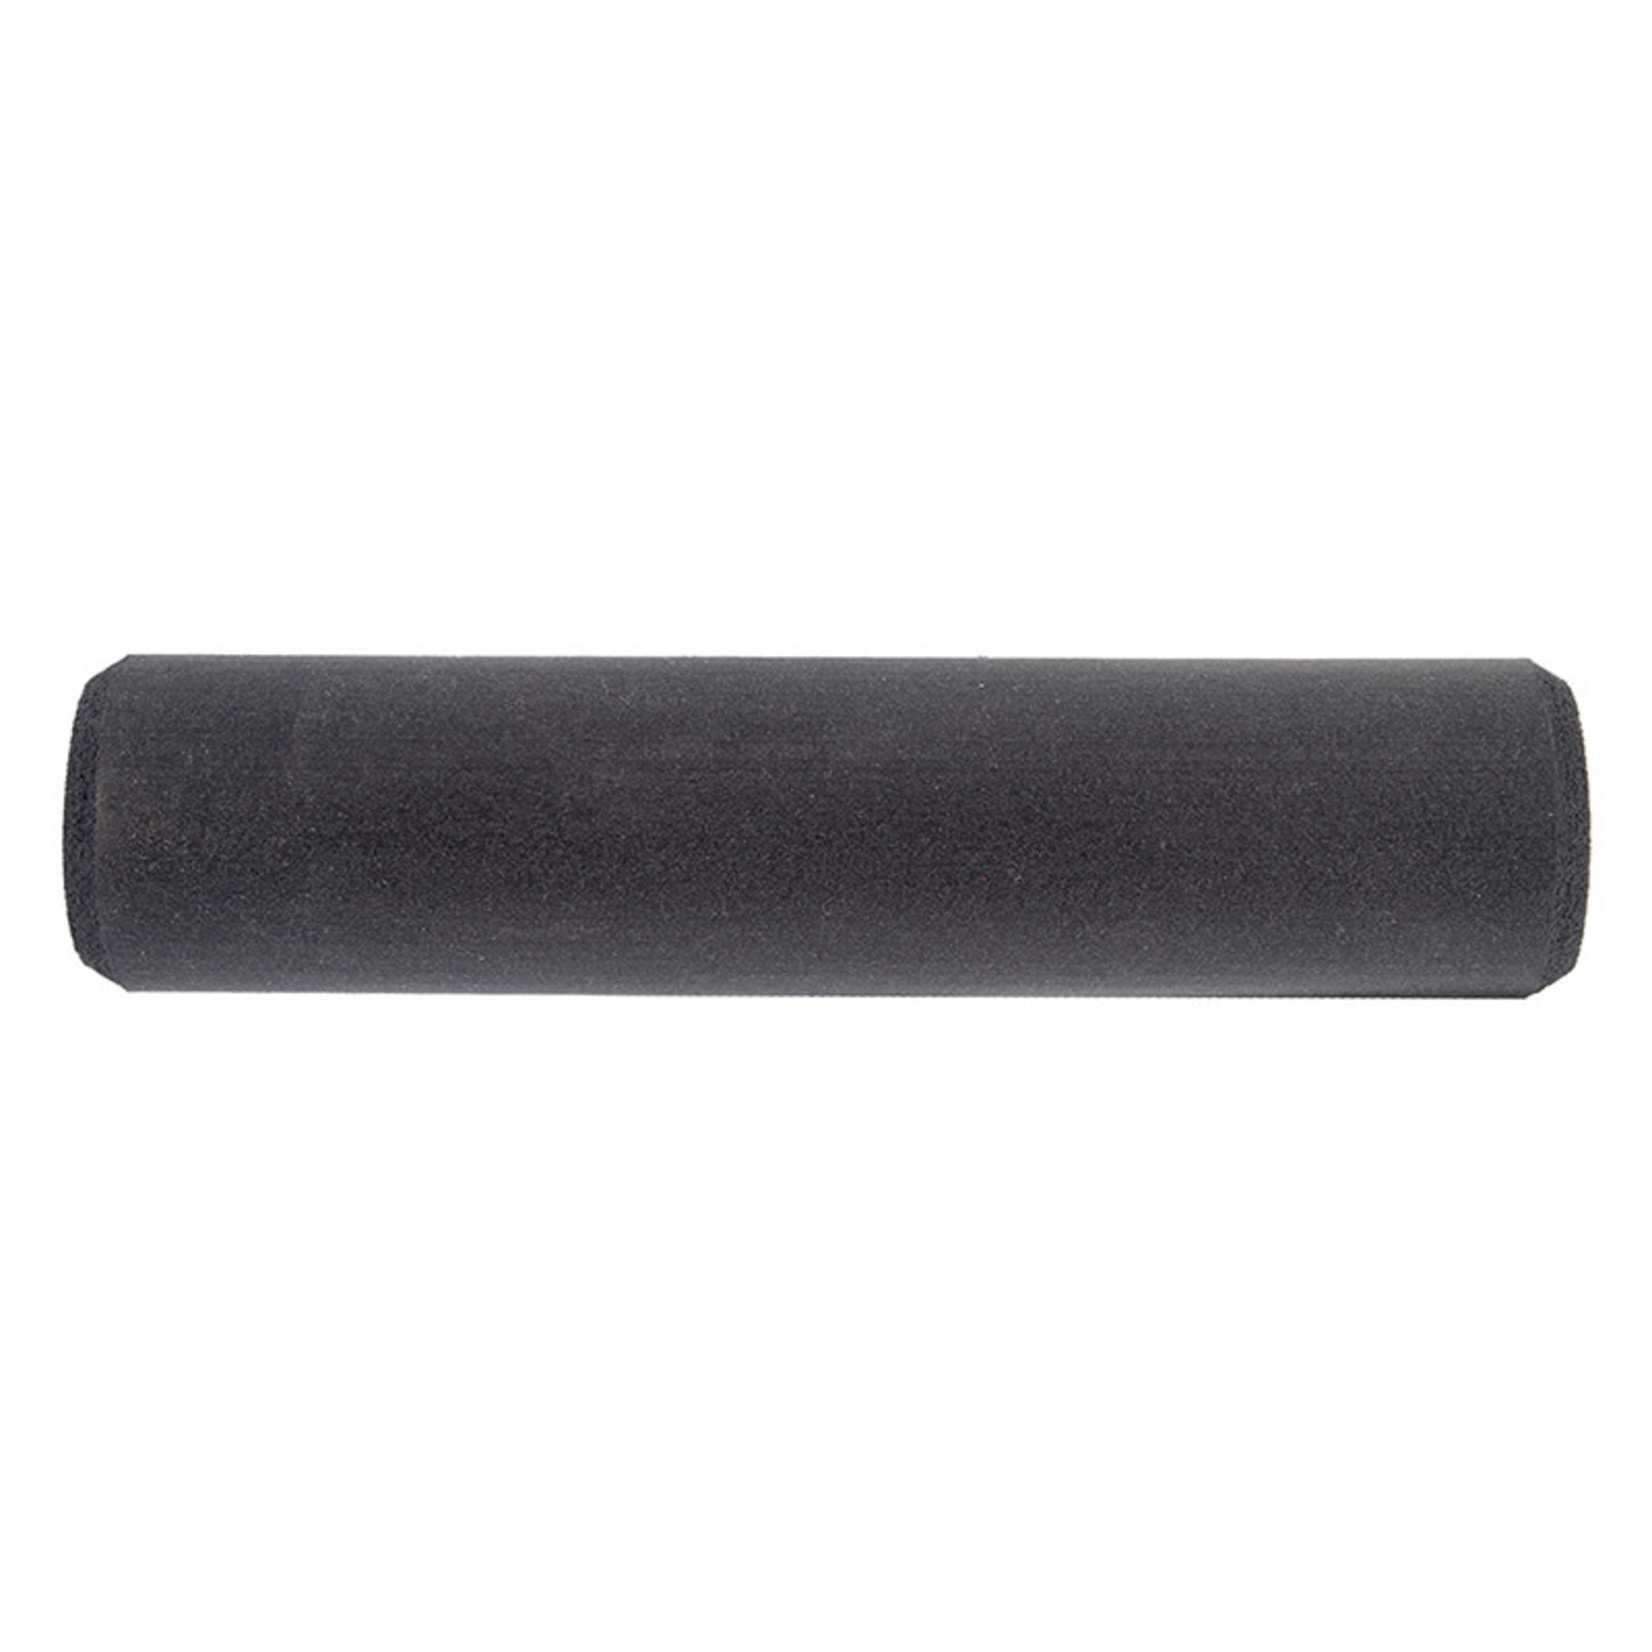 Chunky Grips Silicone Black